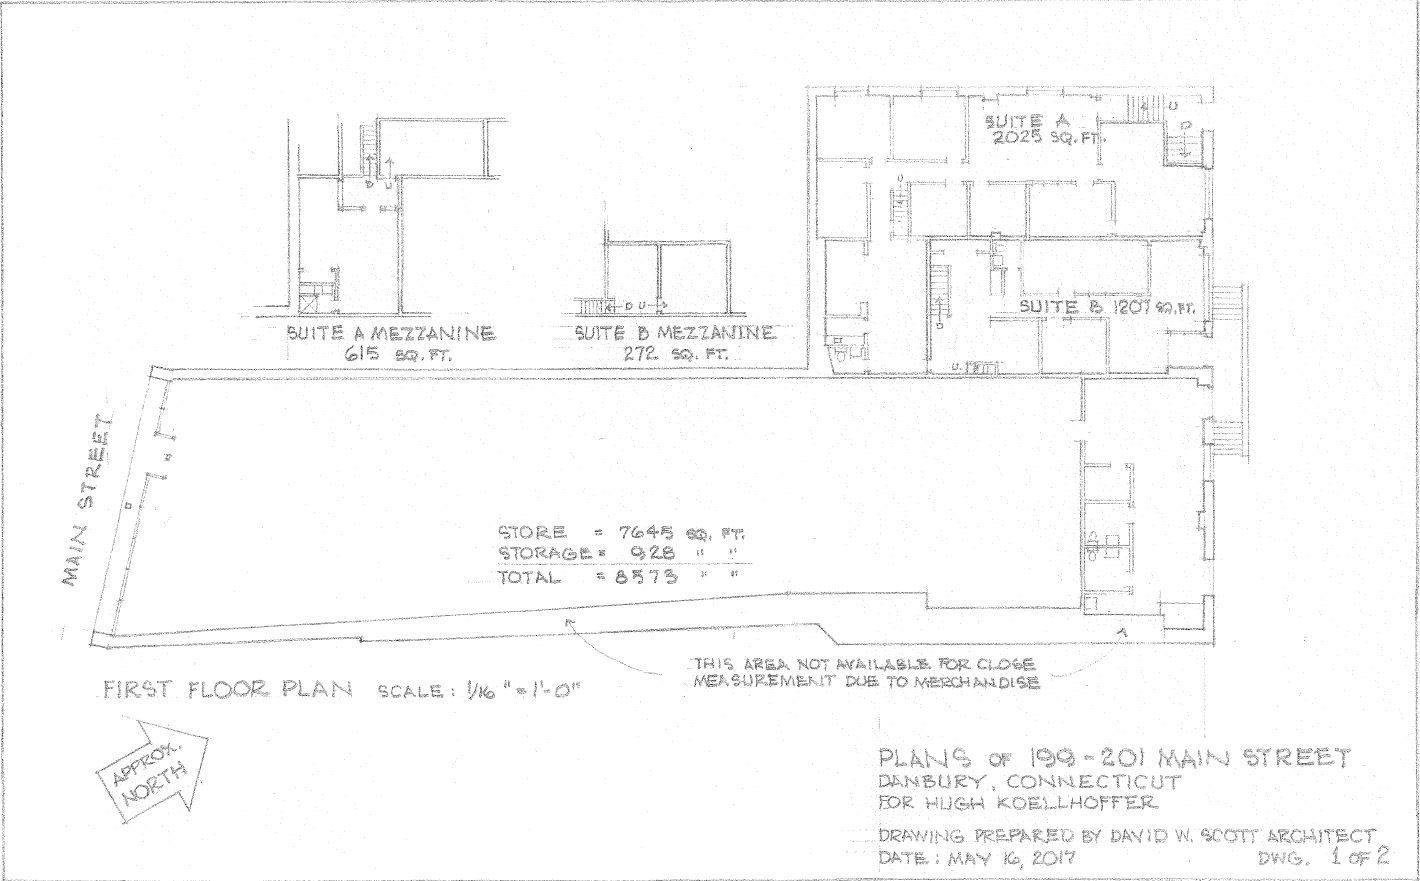 199-201 Main Street Main Level Plan